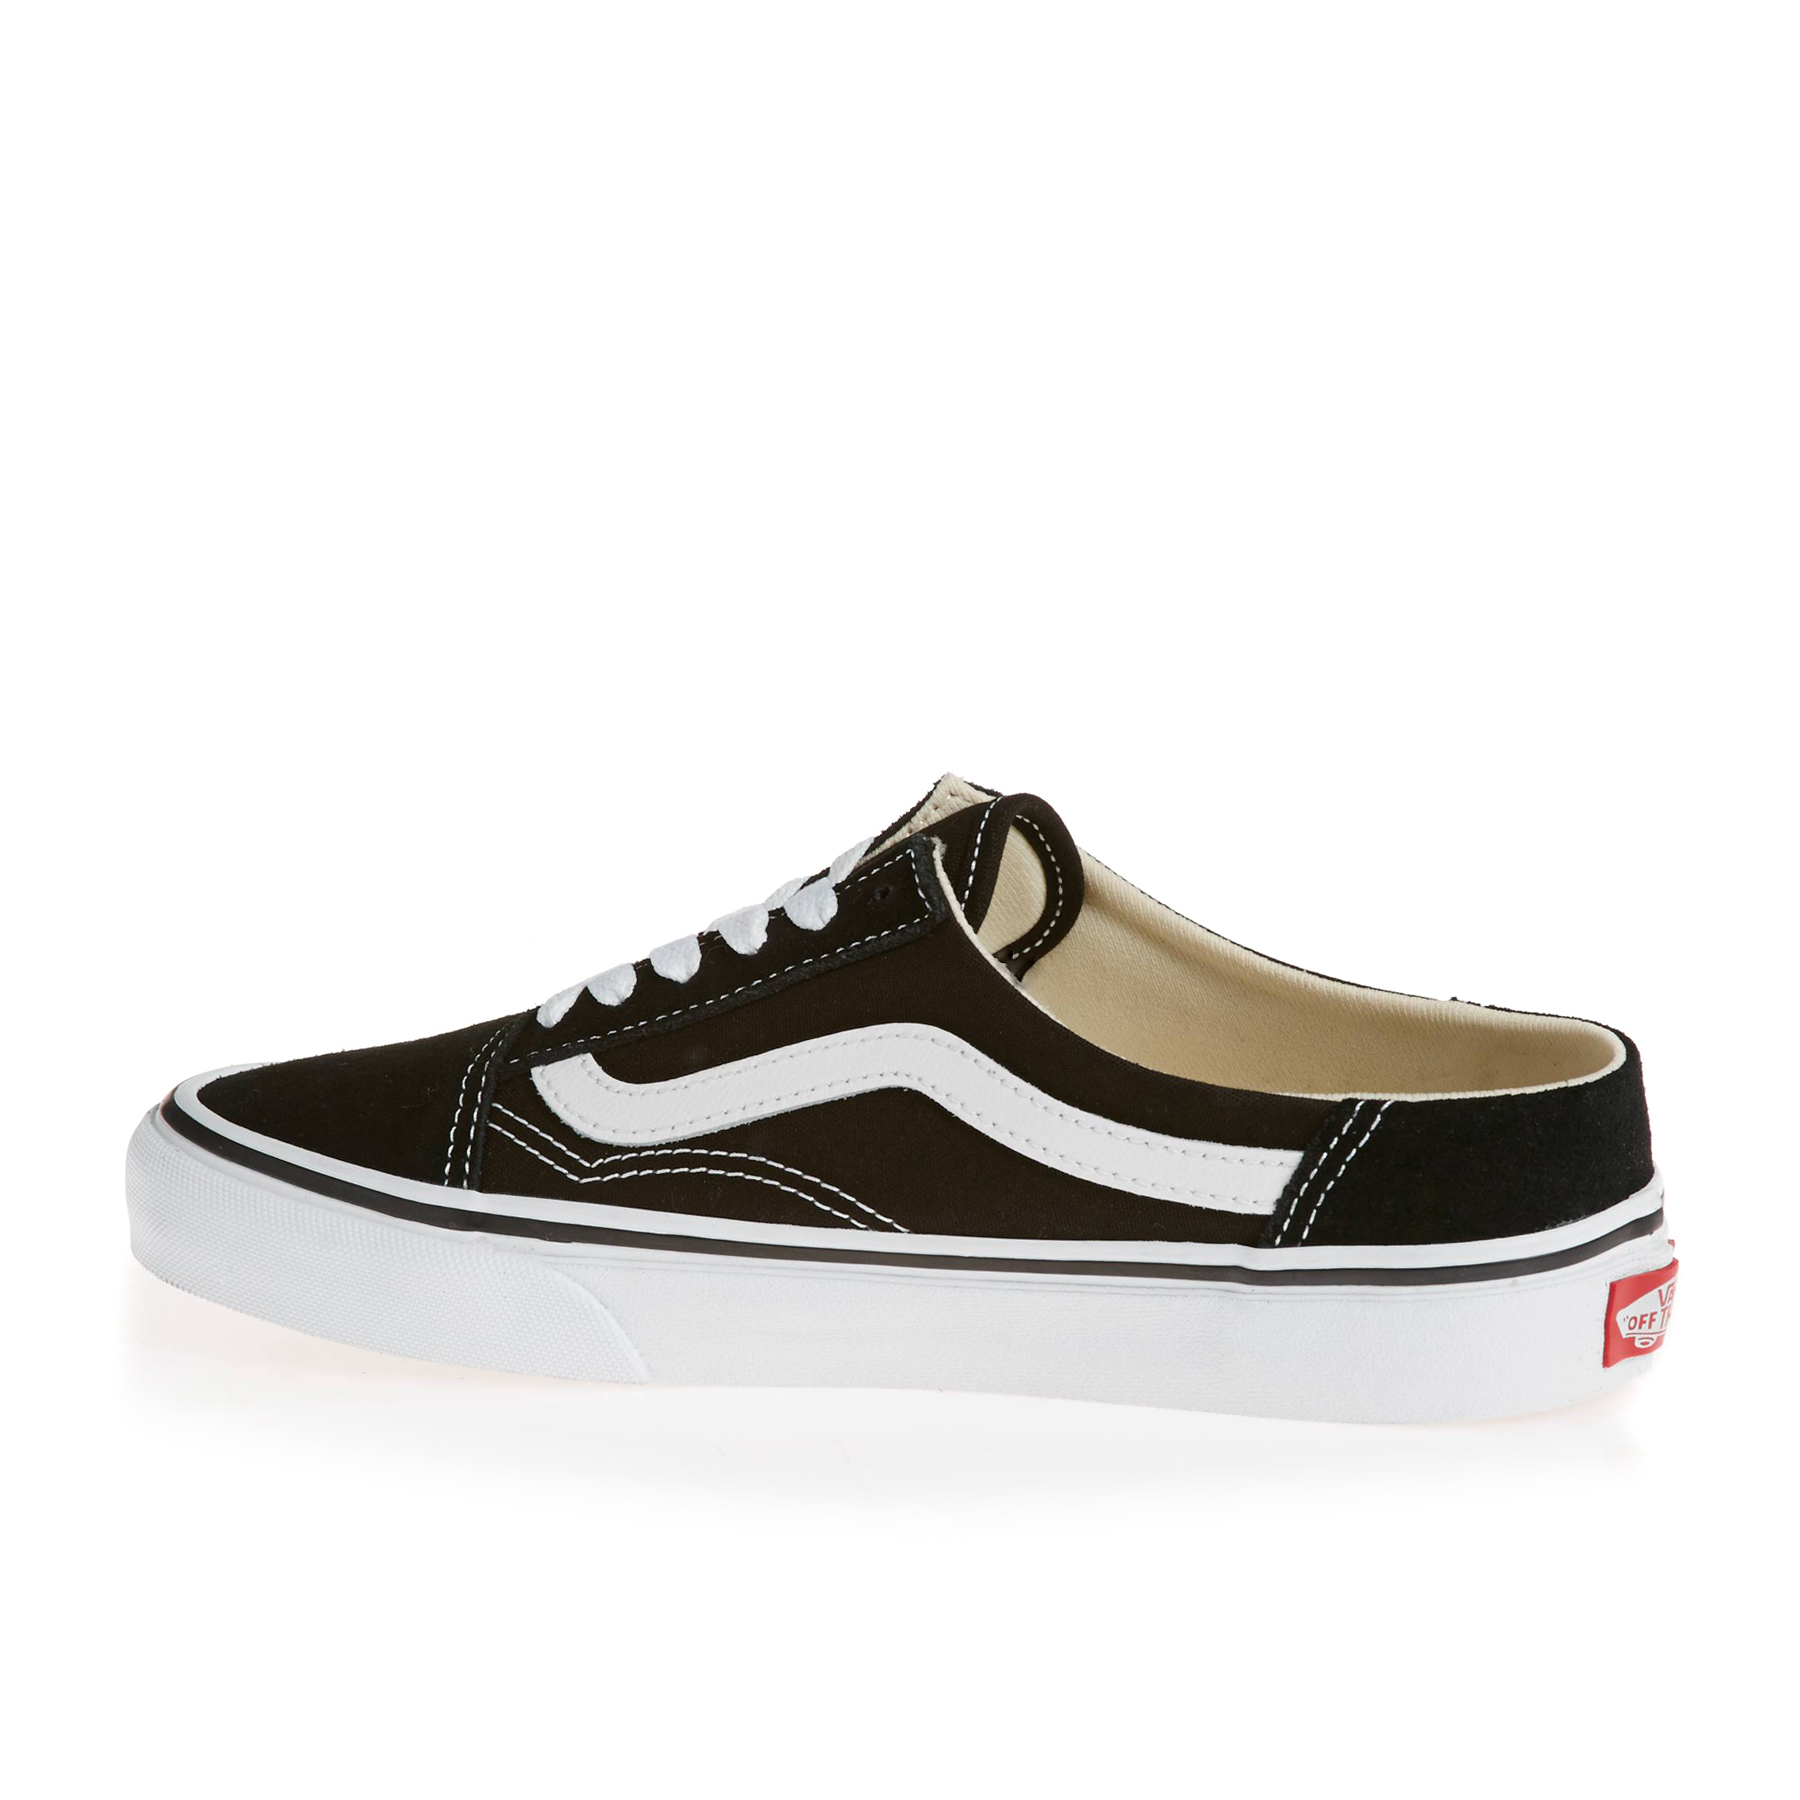 Vans Old Skool Mule Womens Slip On Shoes available from Surfdome